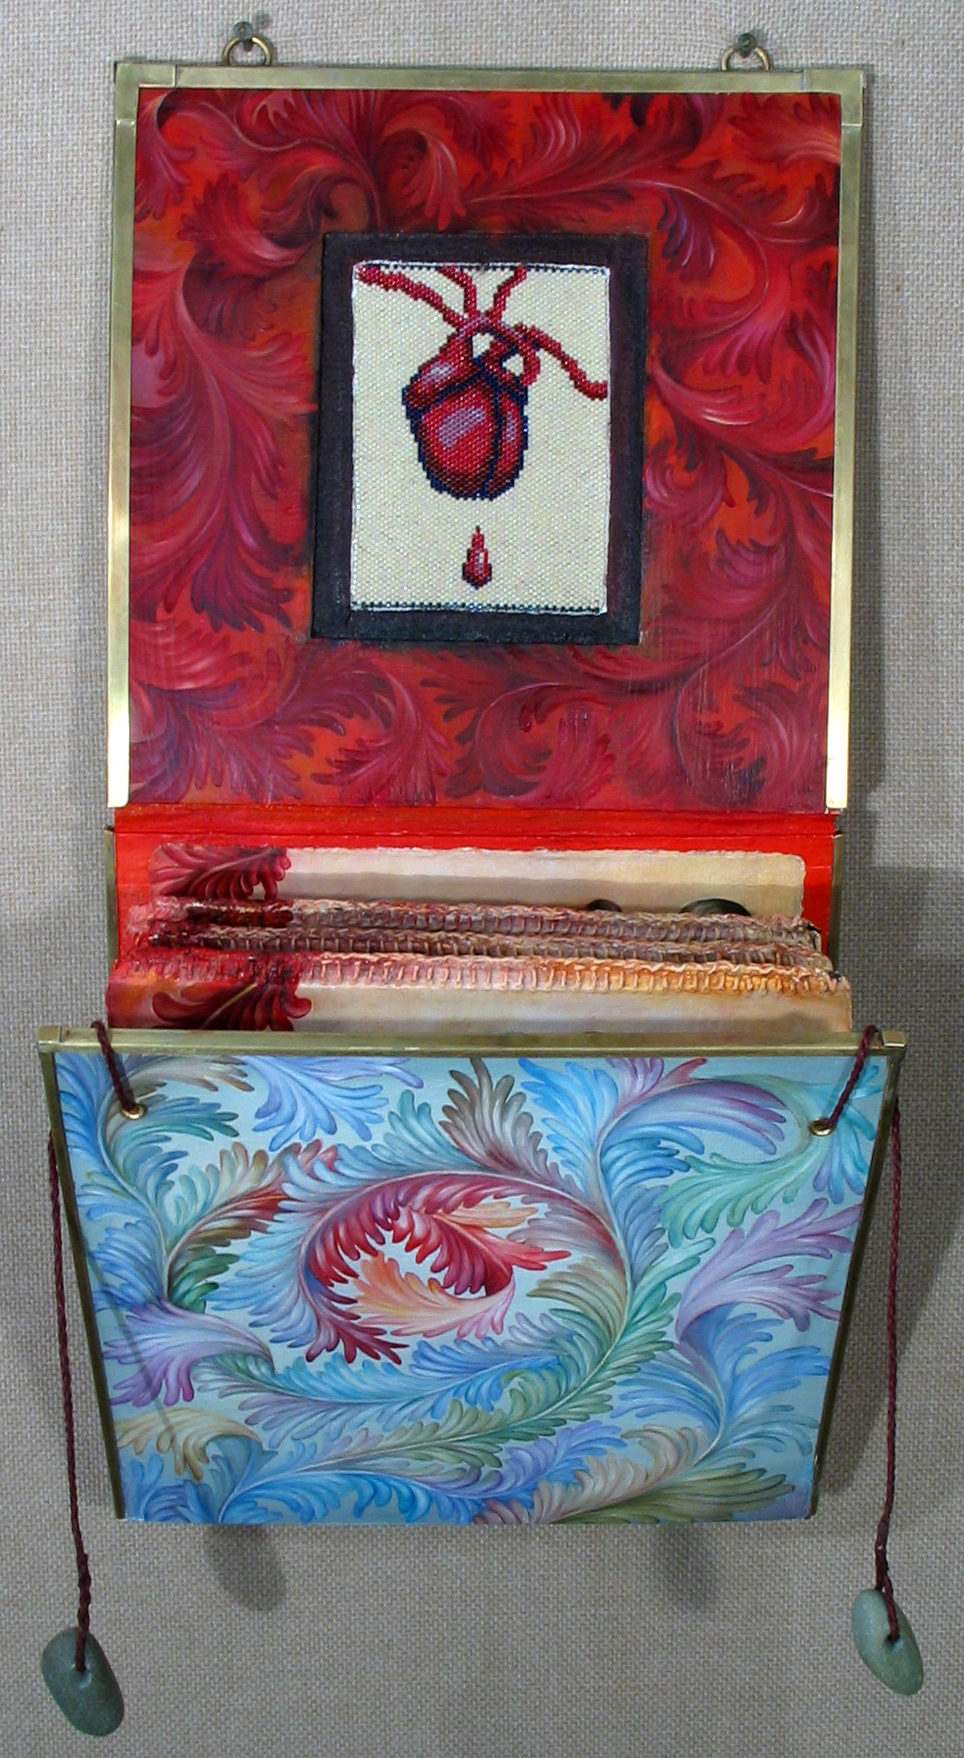 07.054 - cathy weber - art - painting - heart -woman - book art - artist book - book- object - montana - oil painting - bead - heart rock - object poem